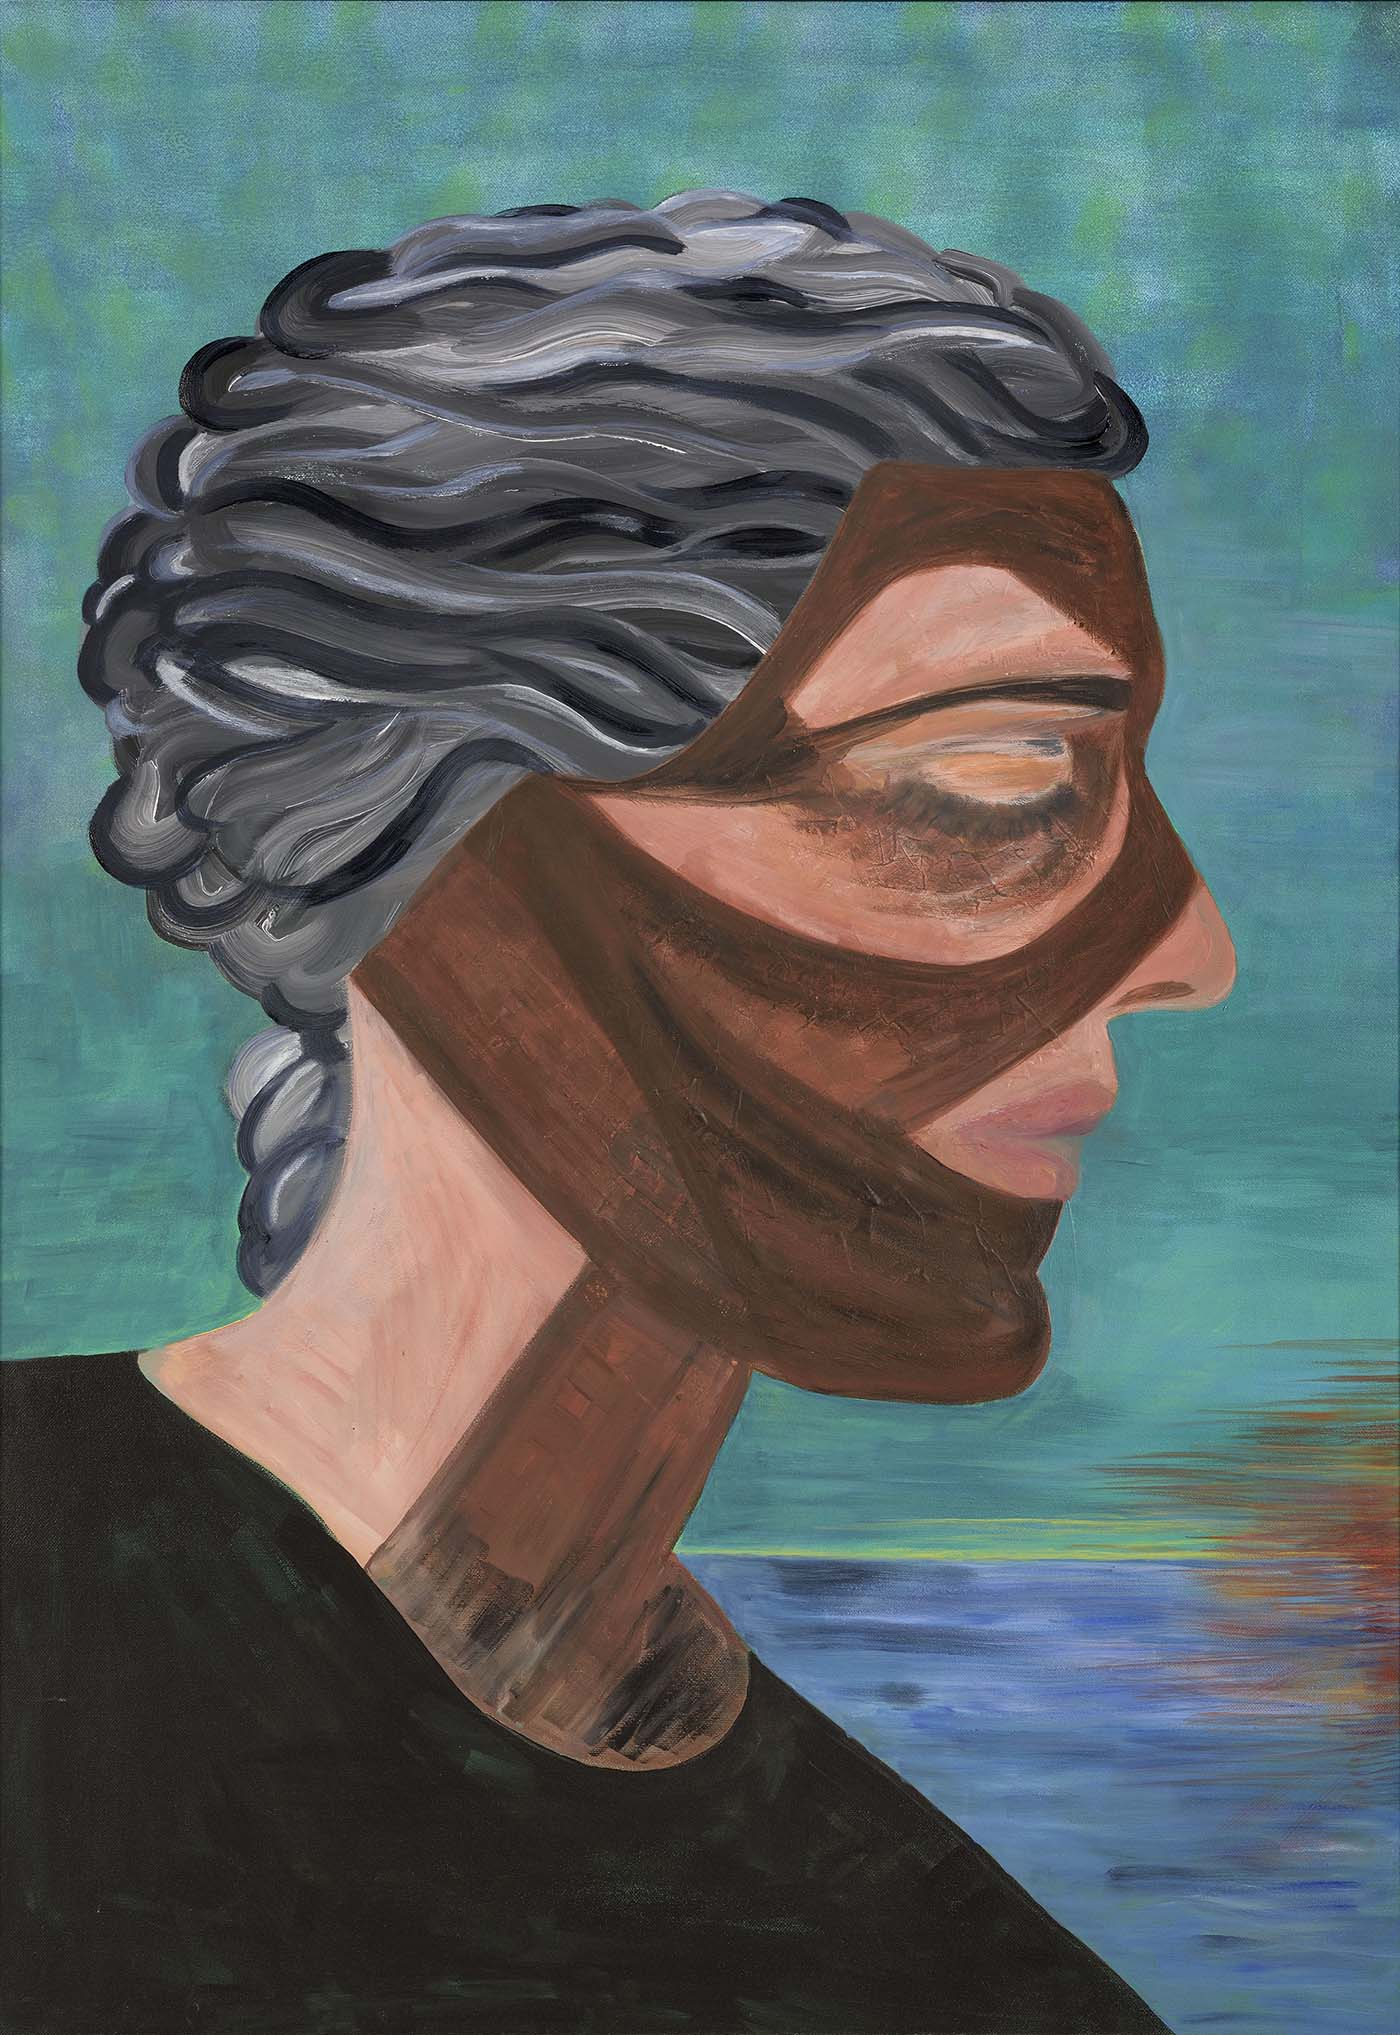 Portrait of Grace, the Suffering of Women at a Time of War, Oil and acrylic on canvas, 122 x 92 cm